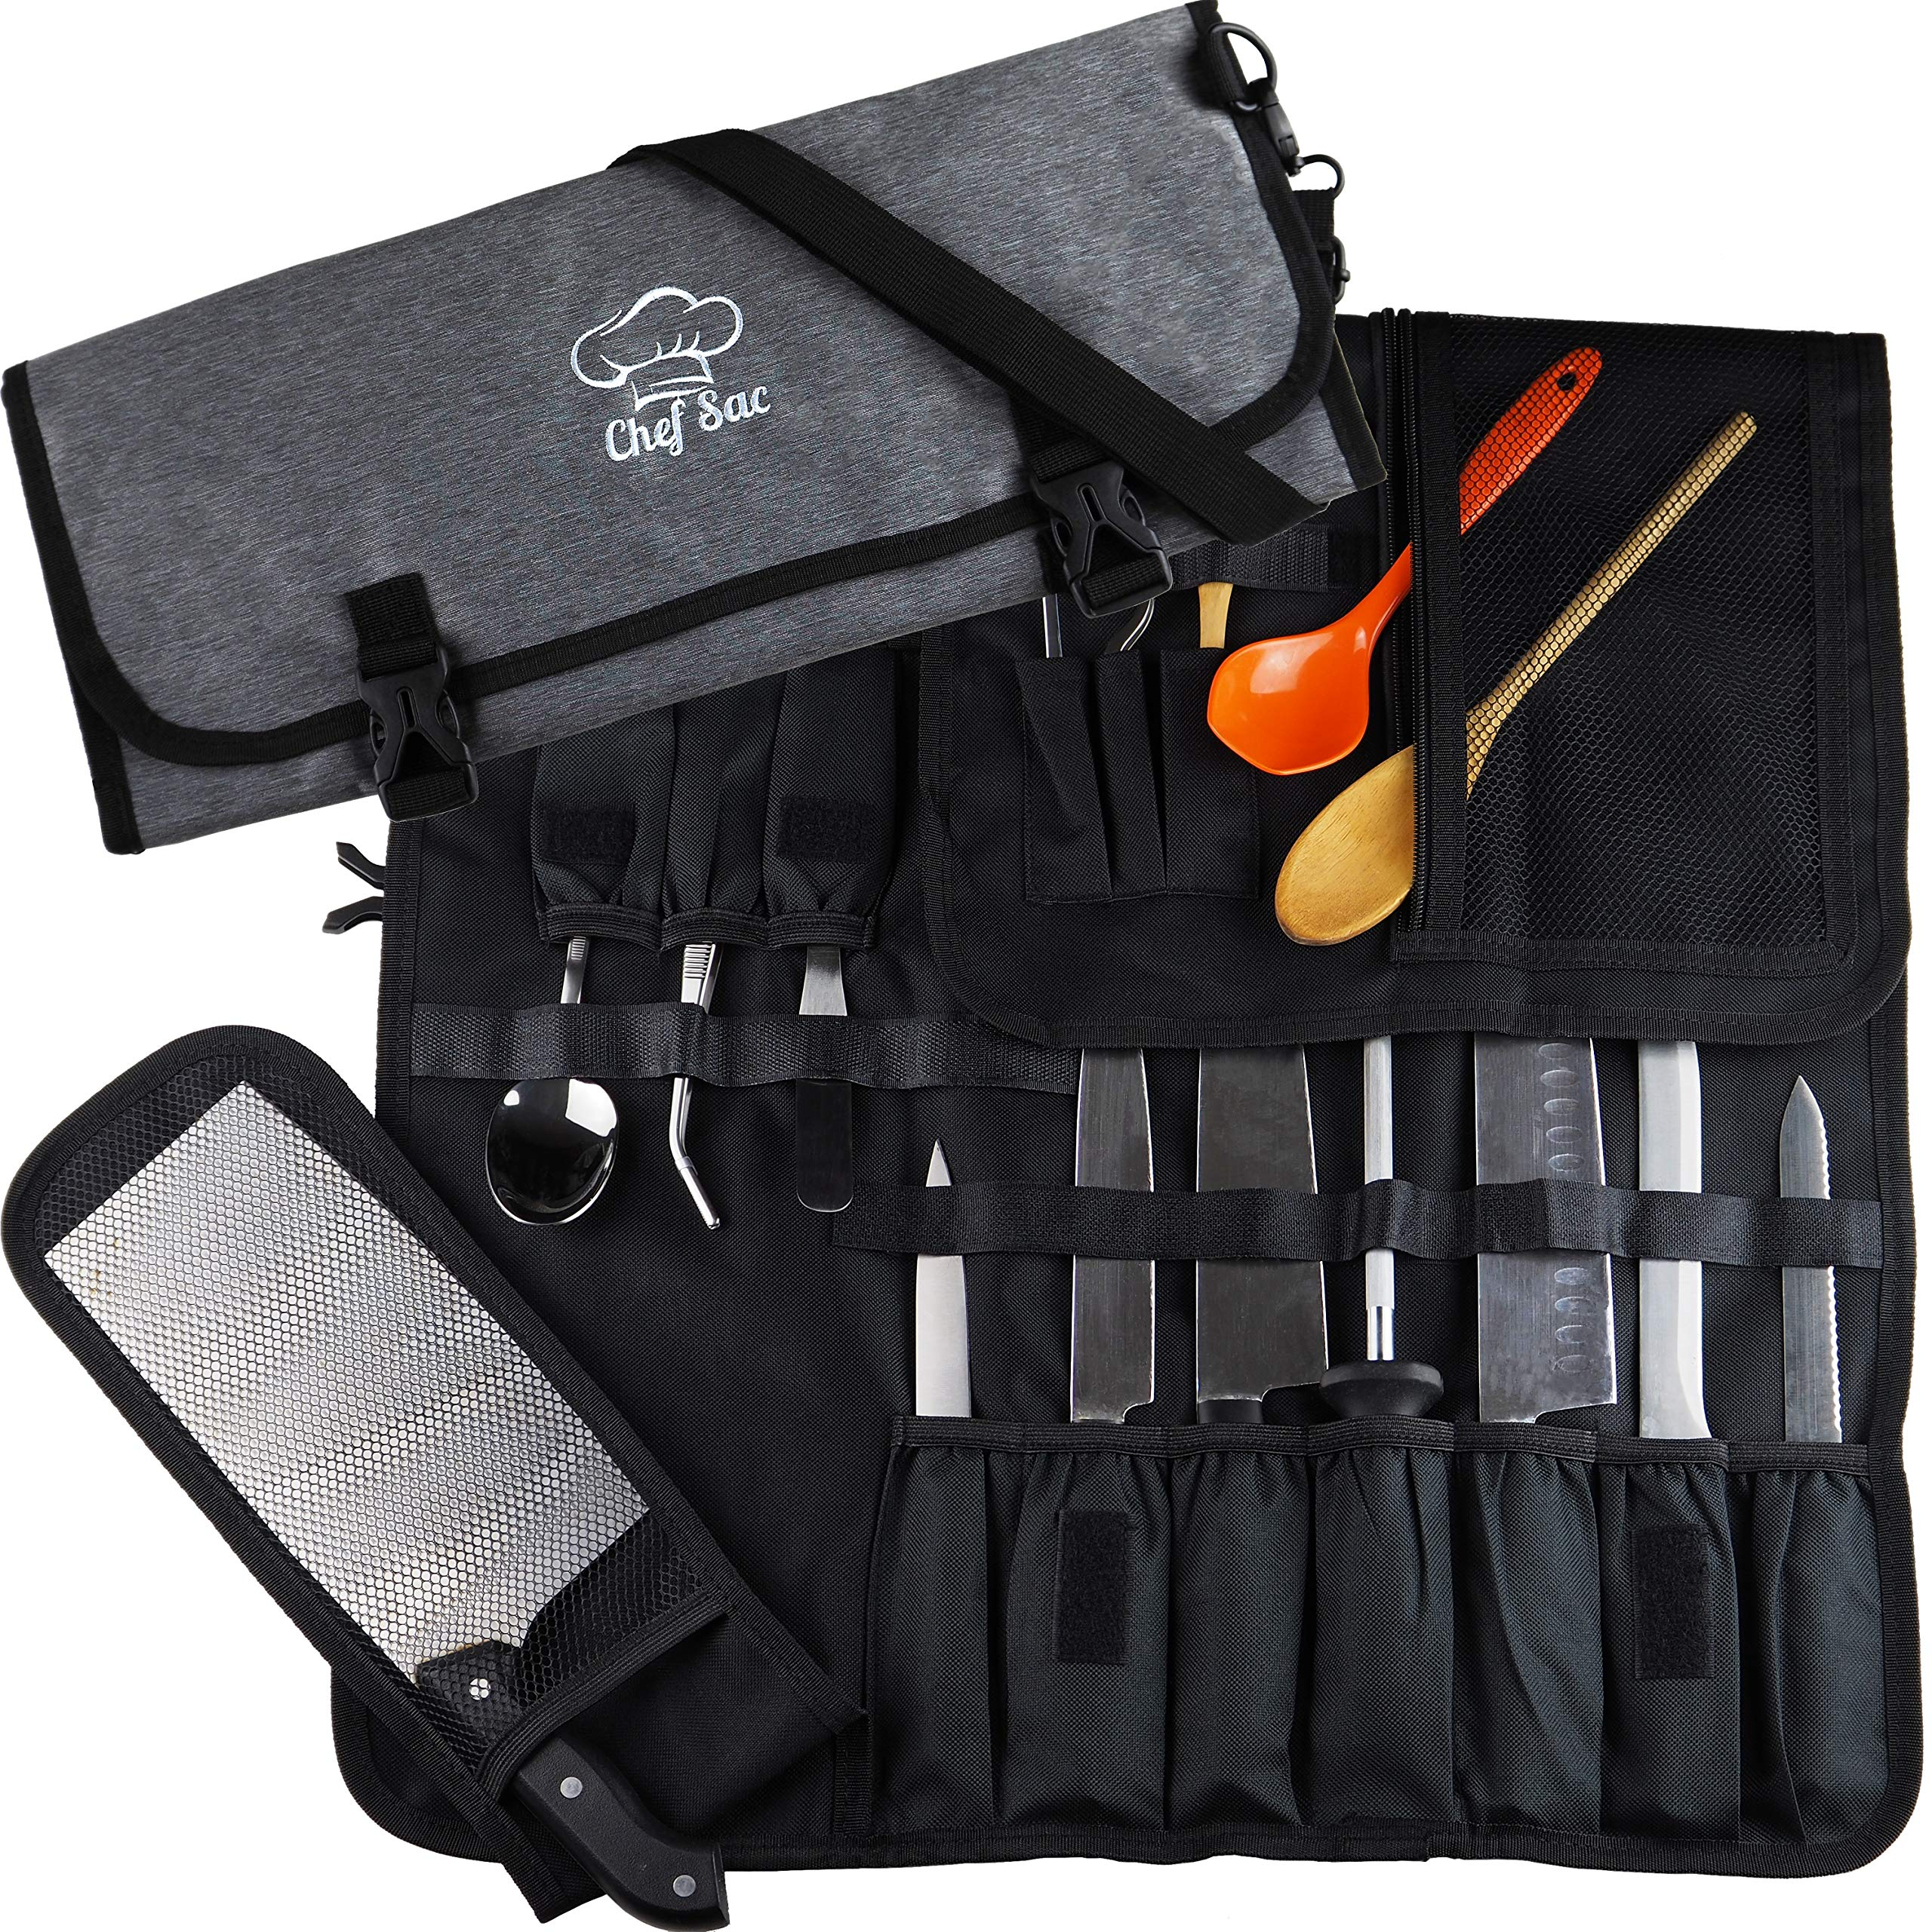 Chef Knife Roll Bag| 8+ Pockets for Knives & Kitchen Utensils | Mesh Pocket Material | Great Gift for Executive Chefs & Culinary Students by Chef Sac